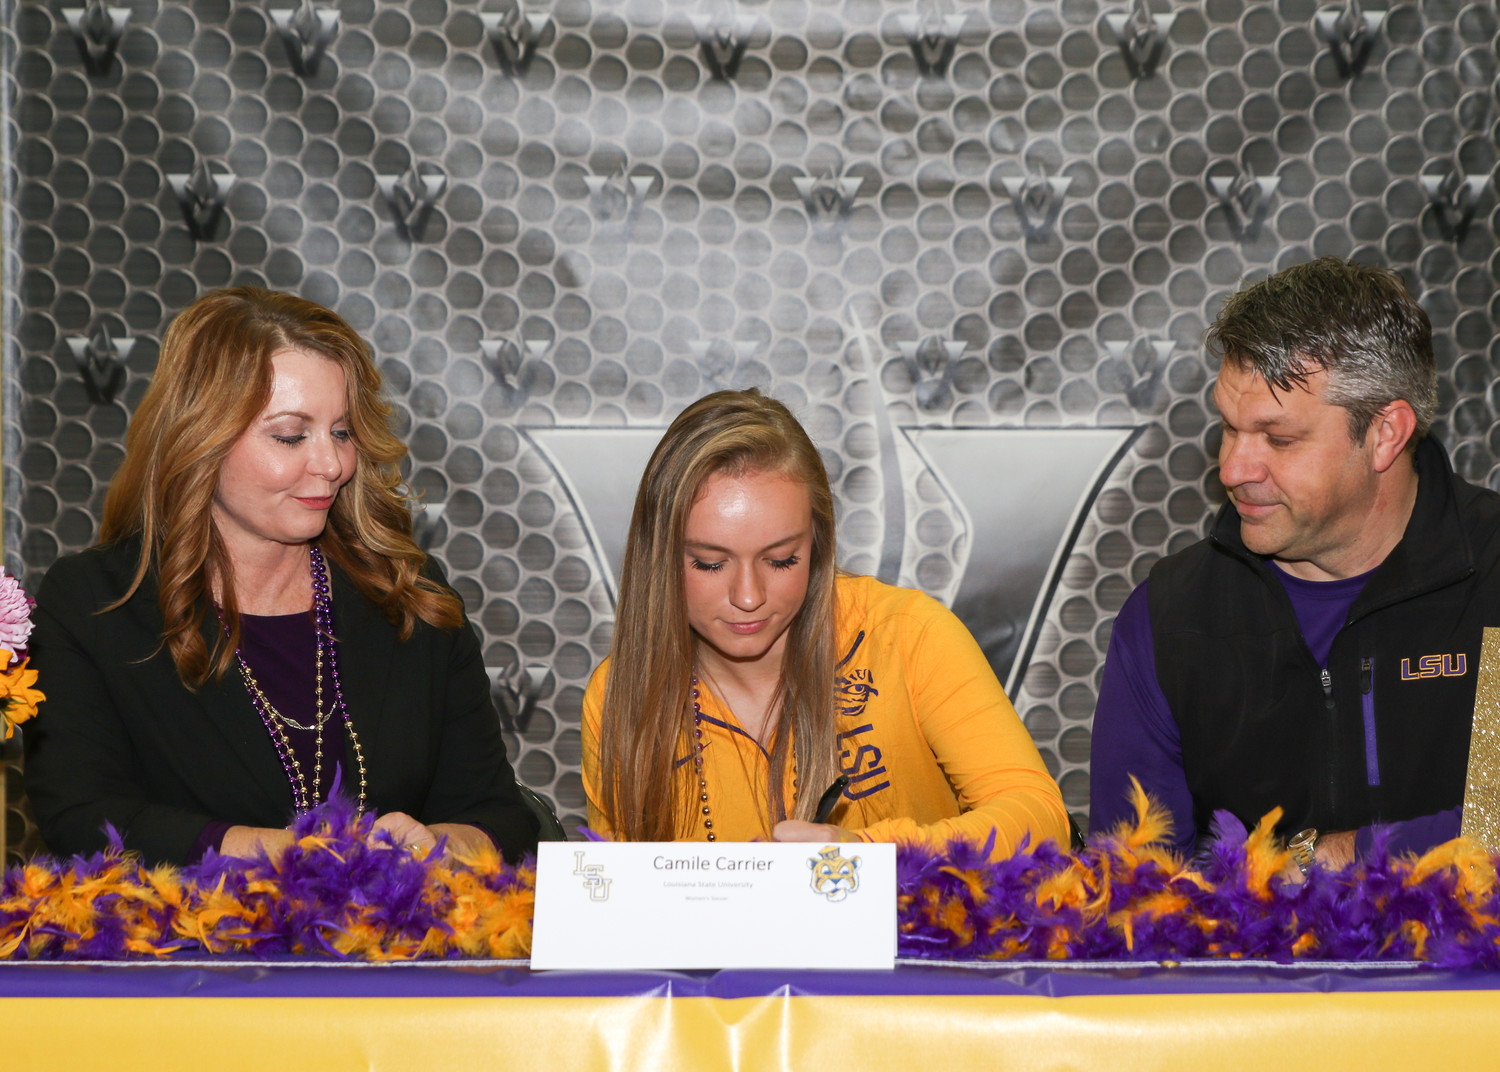 Camile Carrier signed a letter of intent to play soccer at Louisiana State University during a signing day ceremony at Vandegrift High School on February 7, 2018.